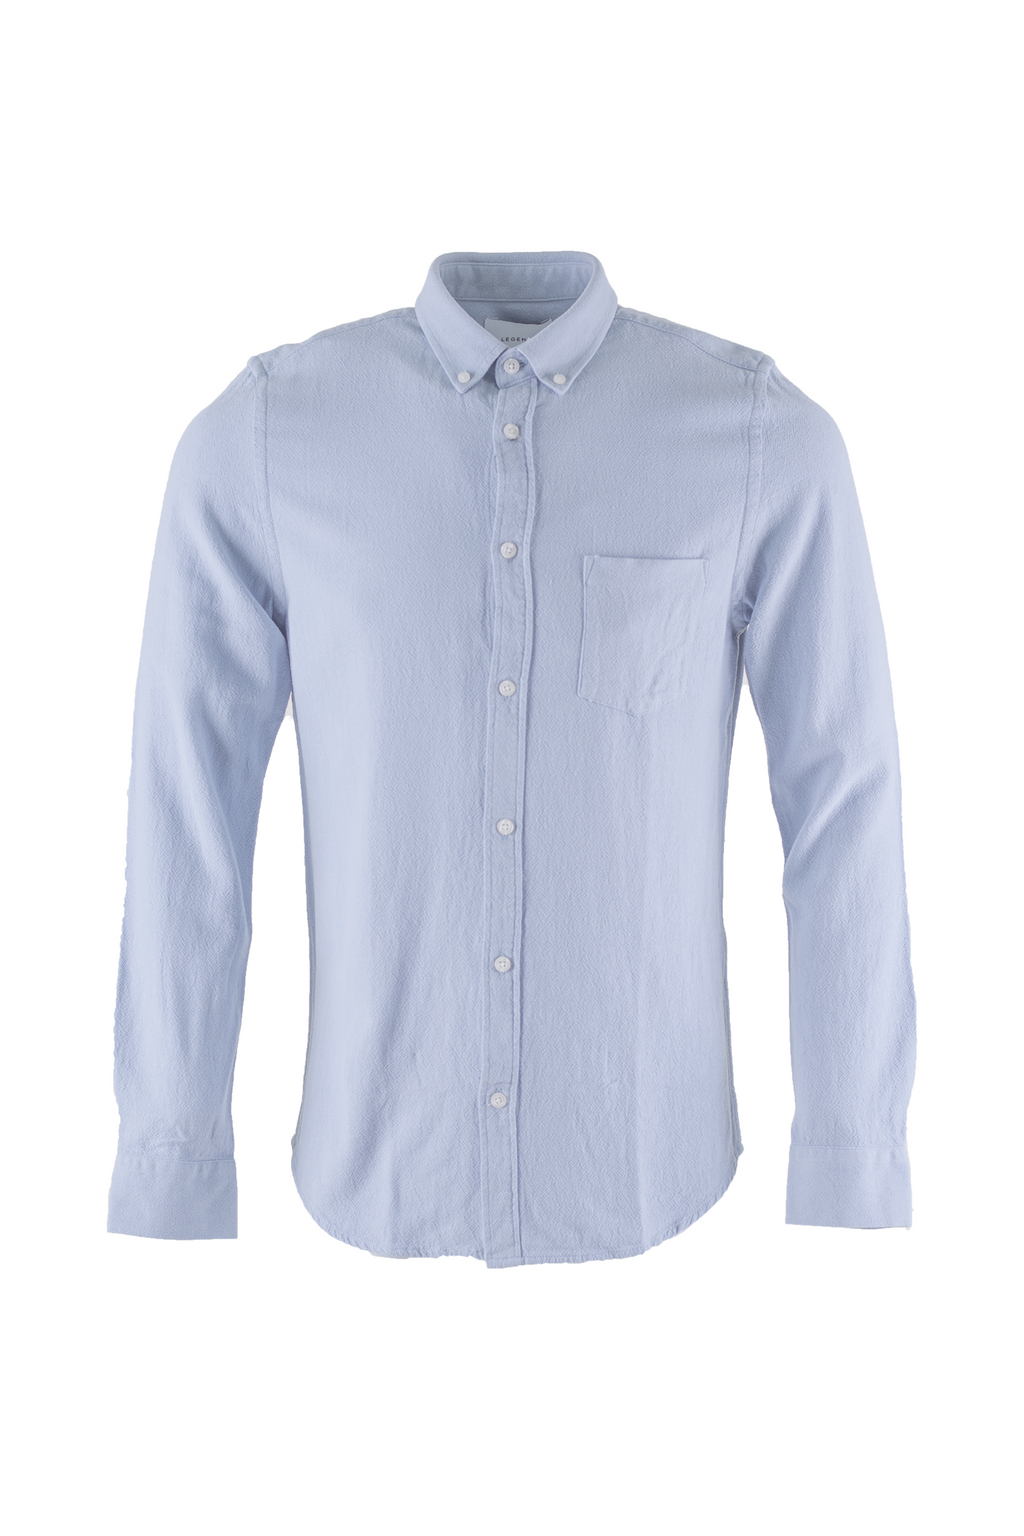 Lagos Shirt - Light Blue